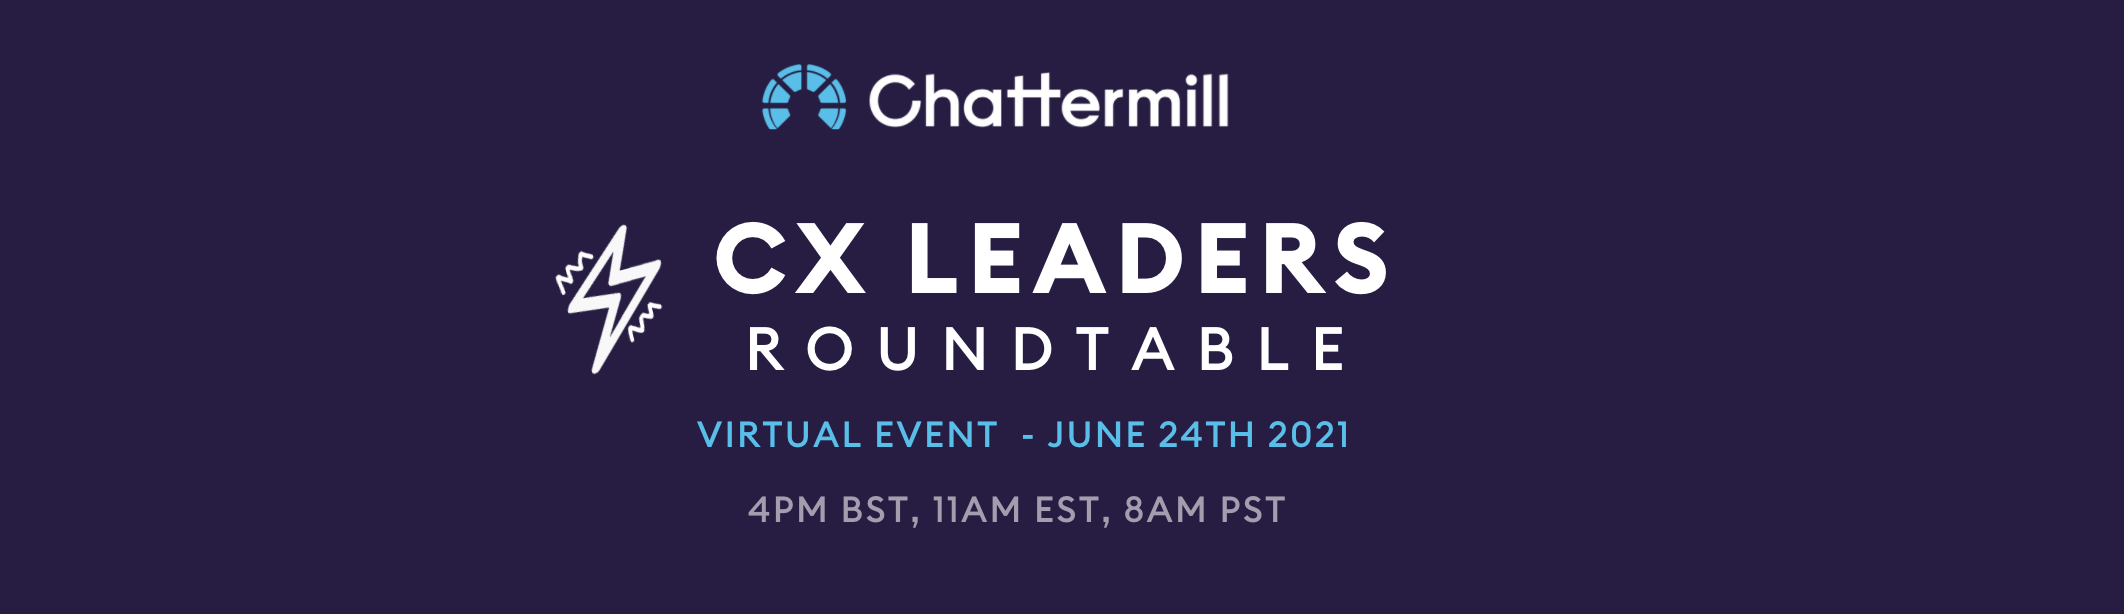 CX Leaders Roundtable